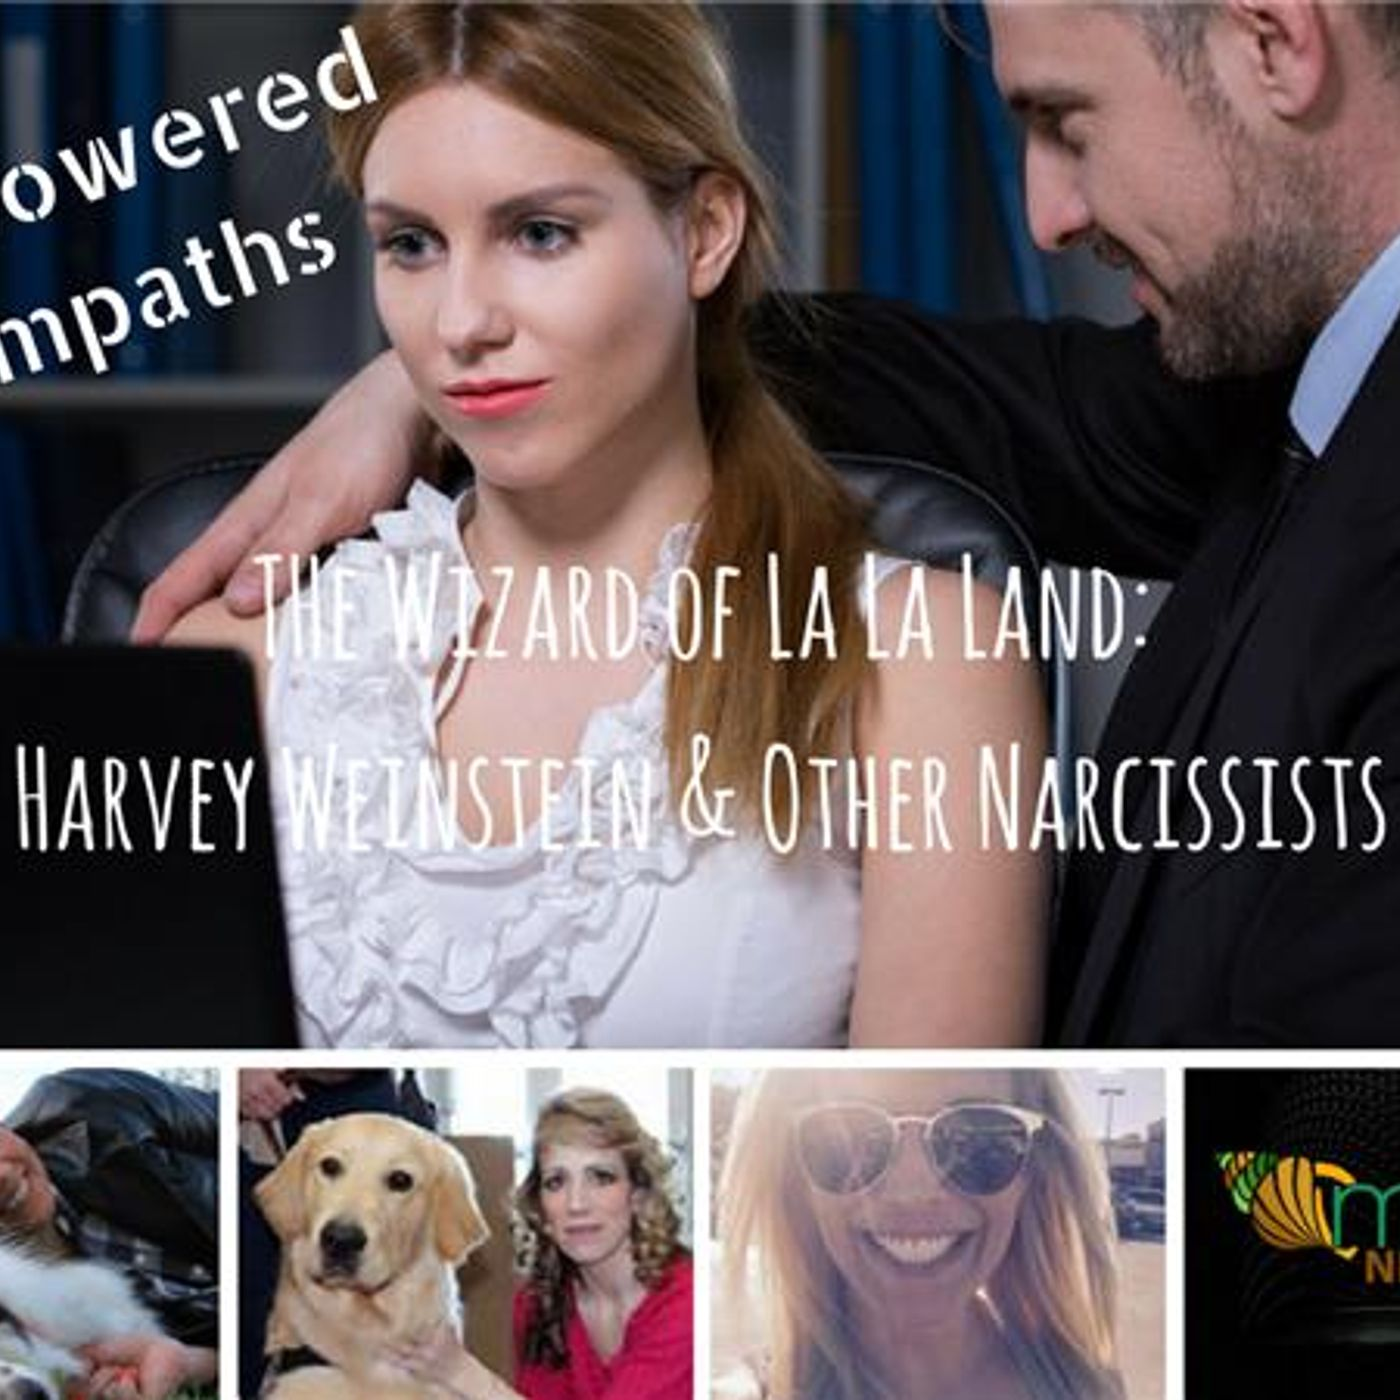 Mental Health News Radio - The Wizard of La La Land: Harvey Weinstein and Other Narcissists